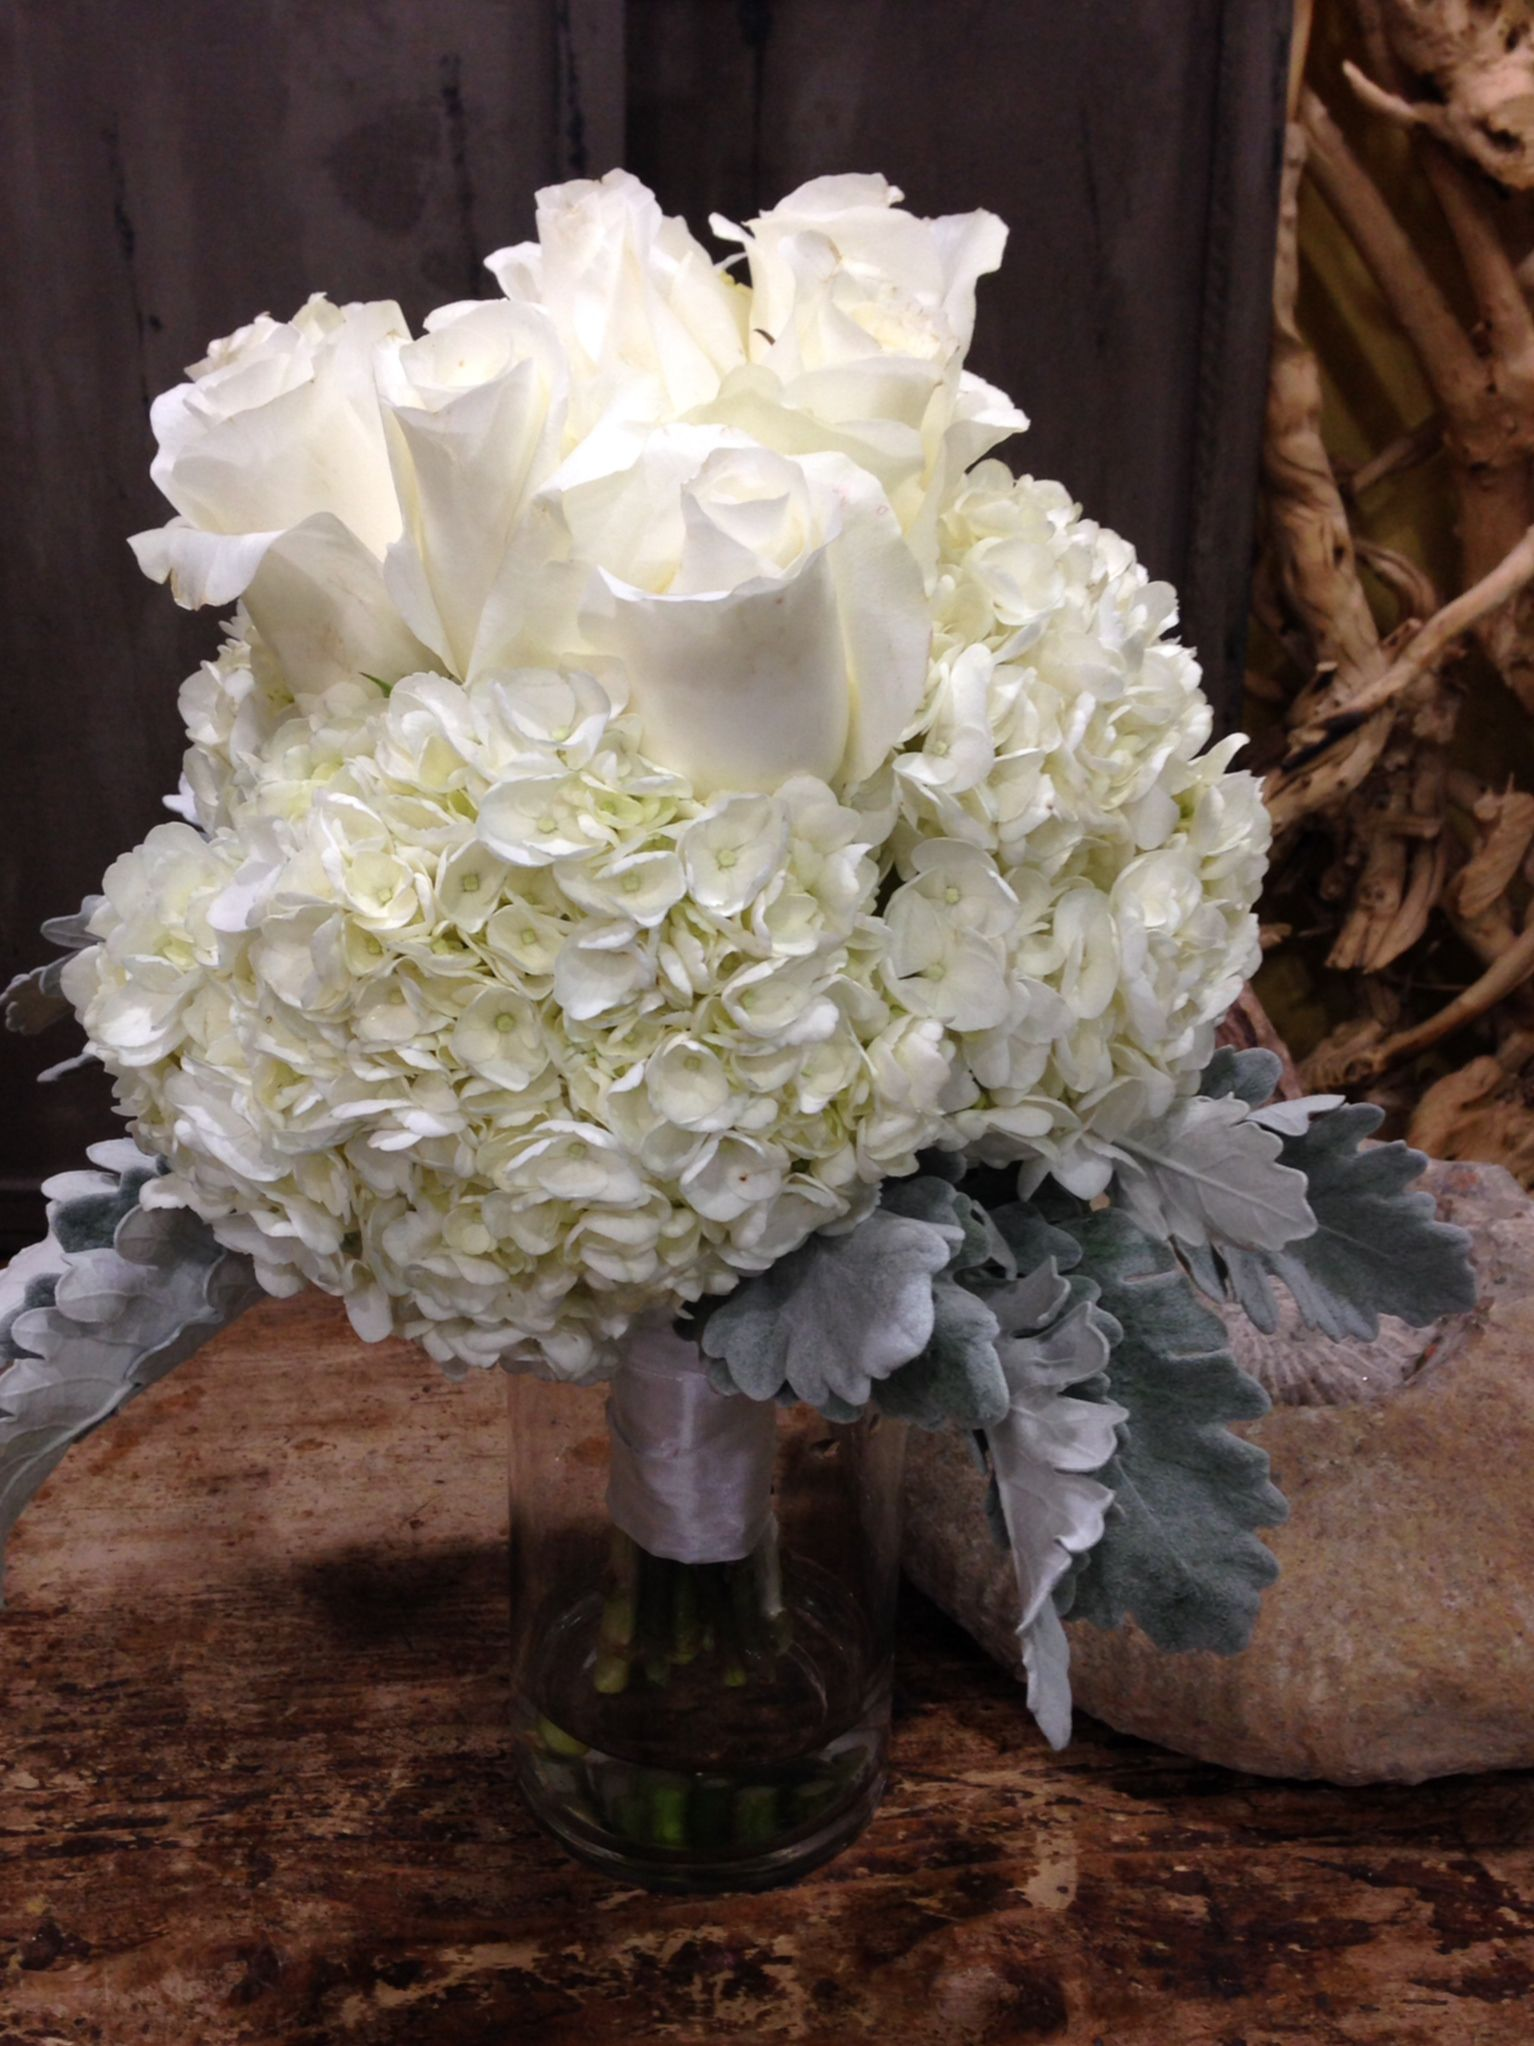 White Hydrangea, White Roses and Dusty Miller Bride's